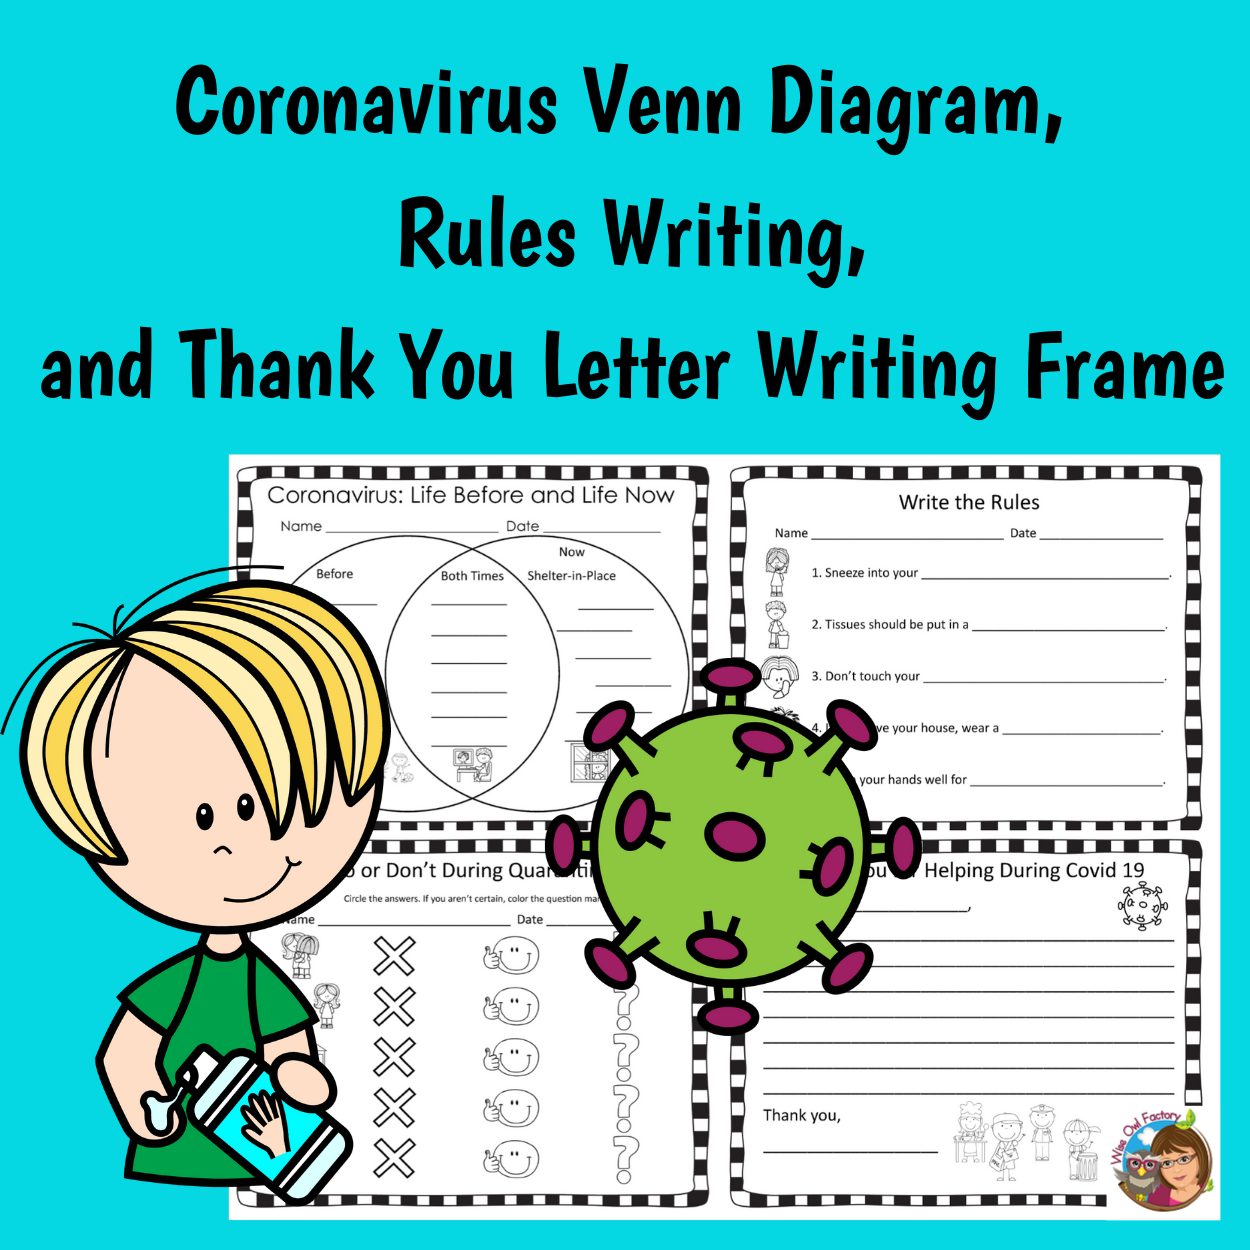 Covid-19 Venn Diagram, Rules, and Thank You Letter Free